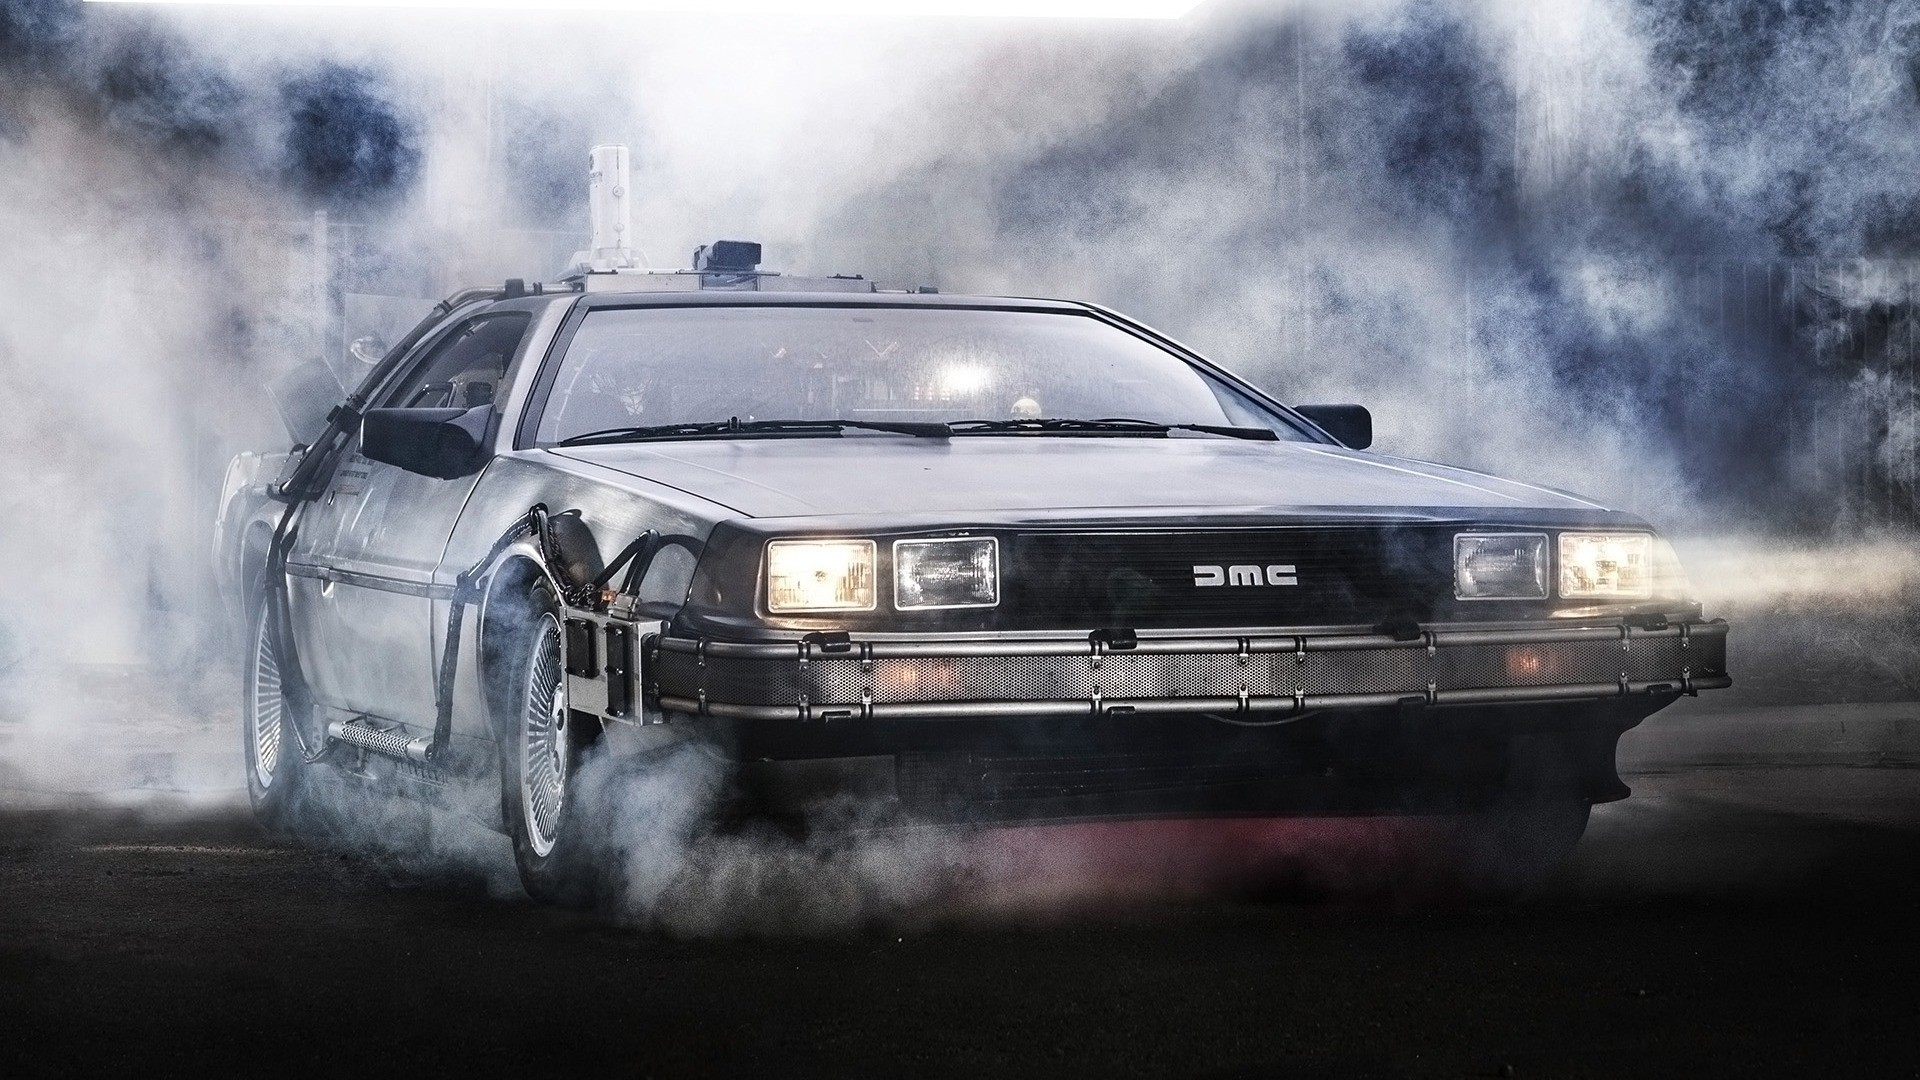 1920x1080 Back To The Future, DeLorean, Artwork, Movies, Car Wallpapers HD / Desktop  and Mobile Backgrounds